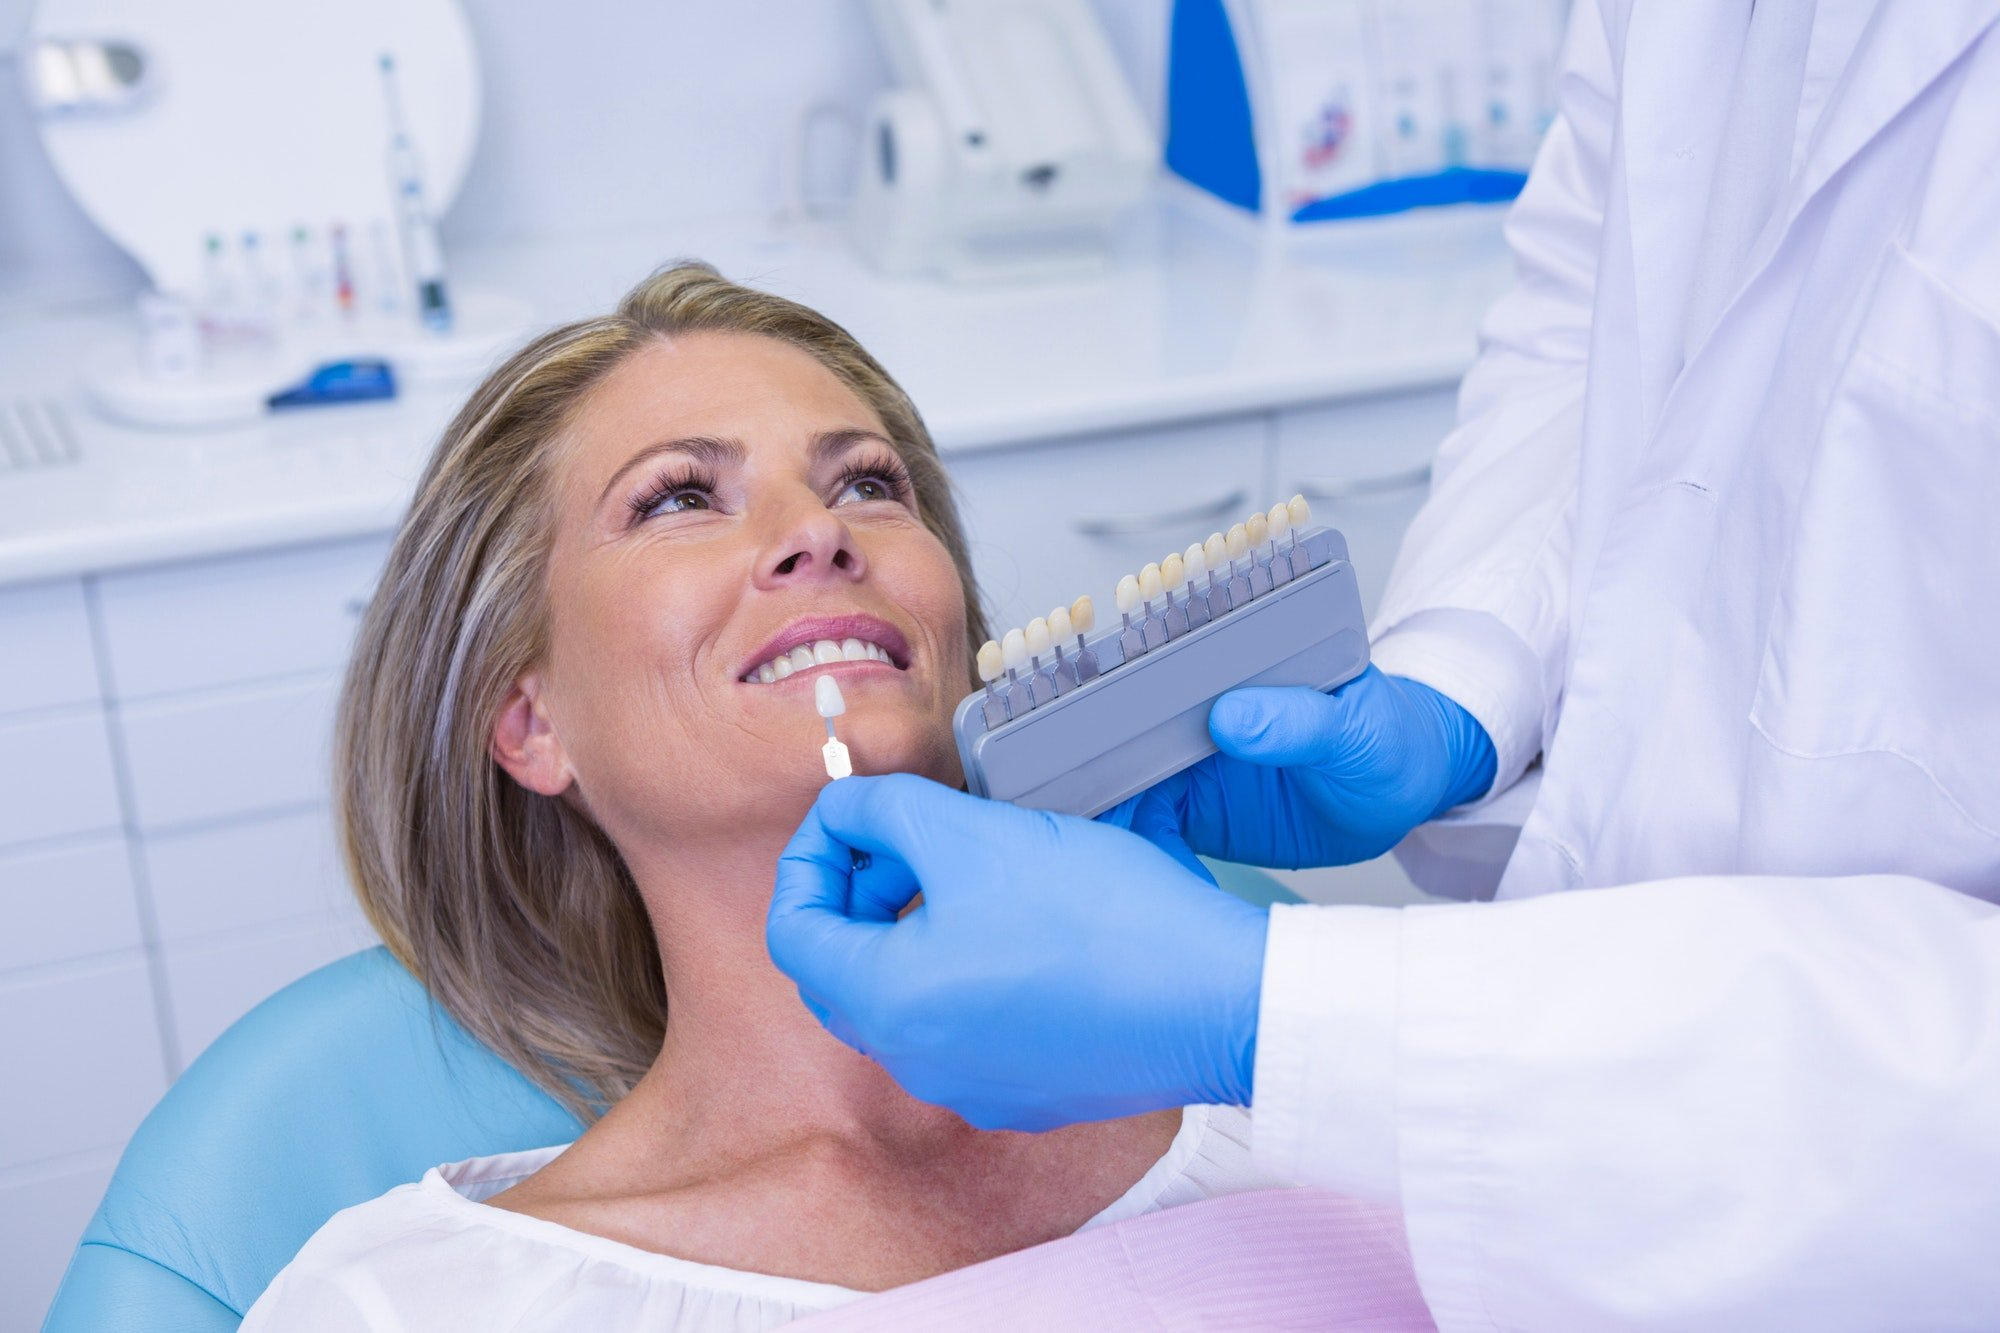 cosmetic dental procedures